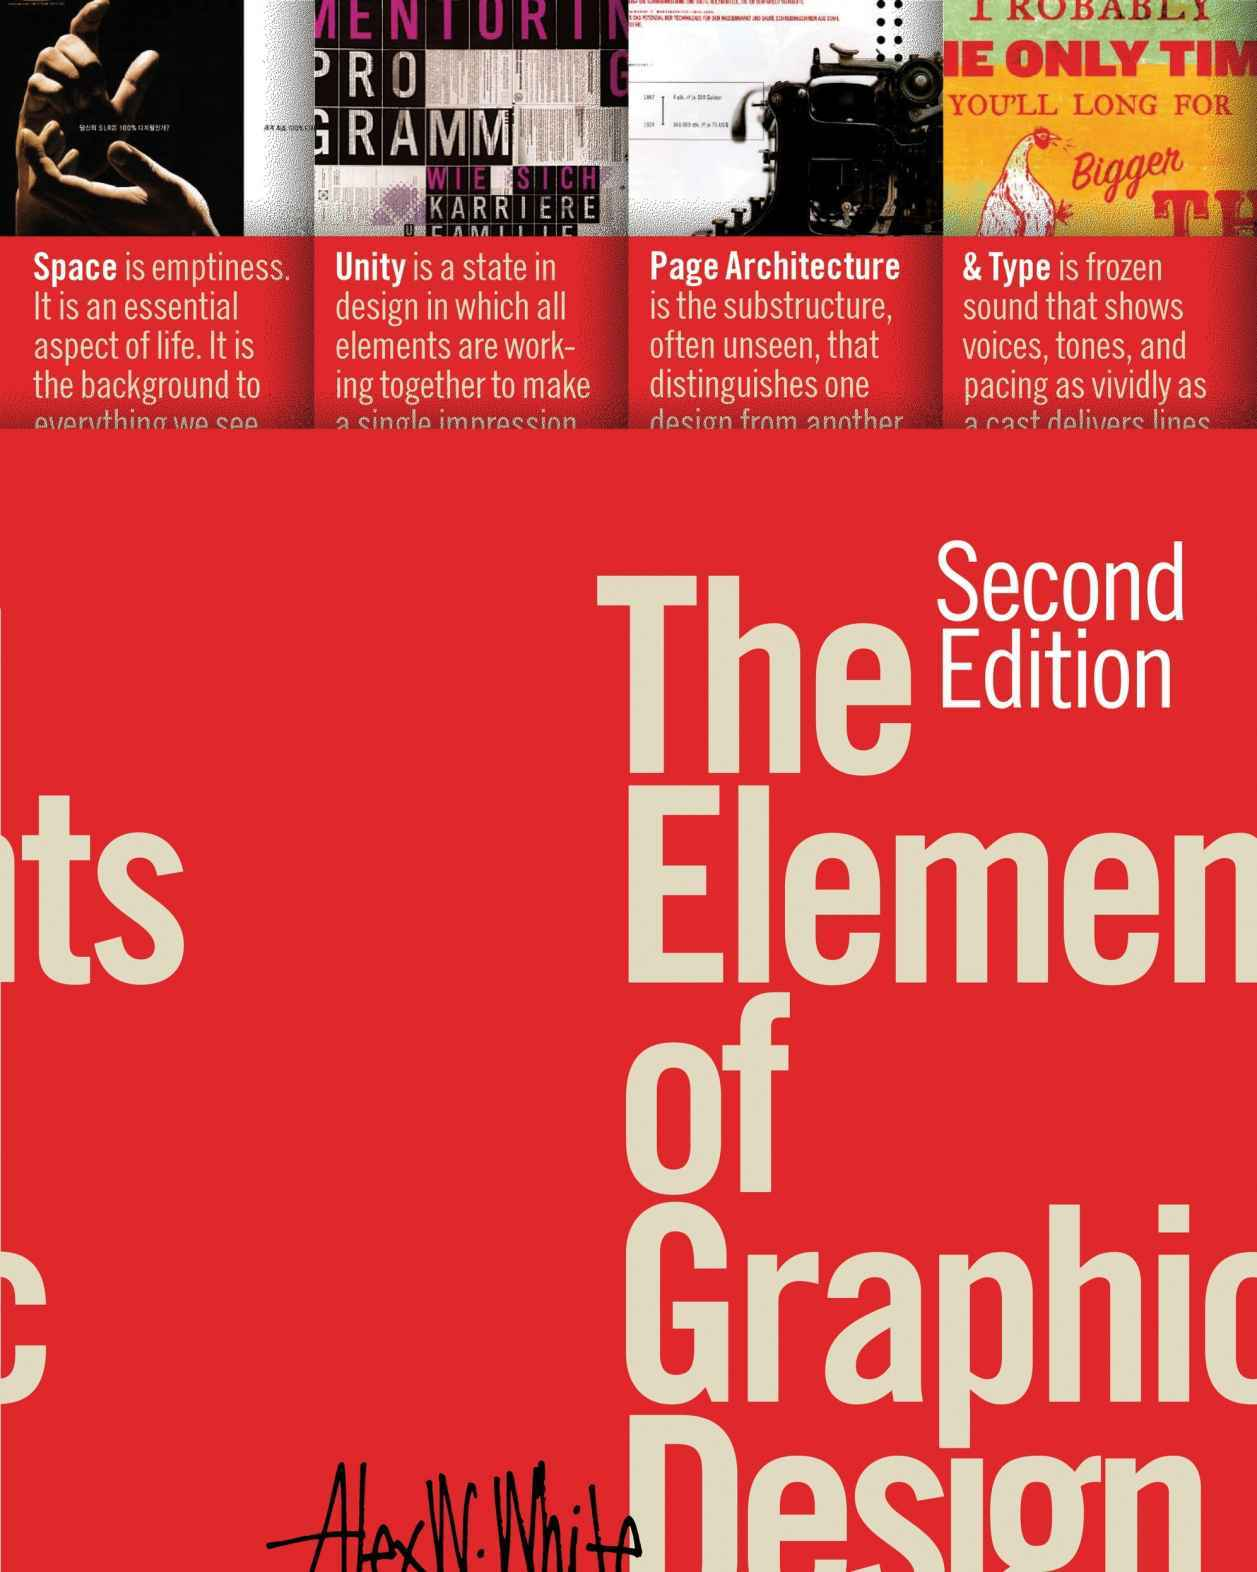 Graphic Design Book Cover Page : The elements of graphic design by alex white